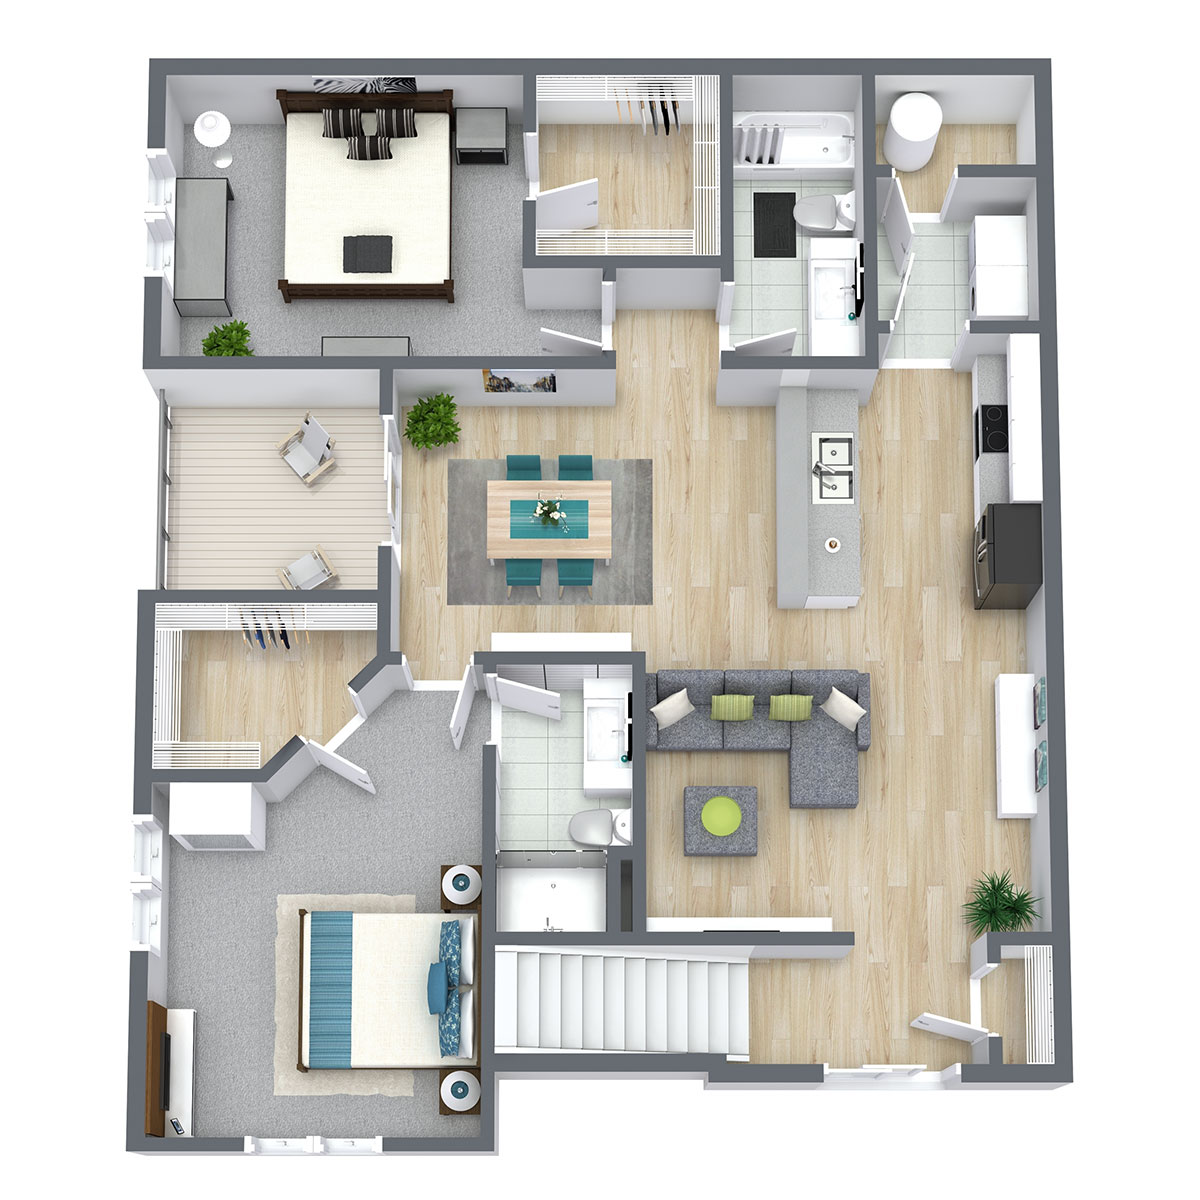 Floorplan - Two Bed Two Bath 1170 image